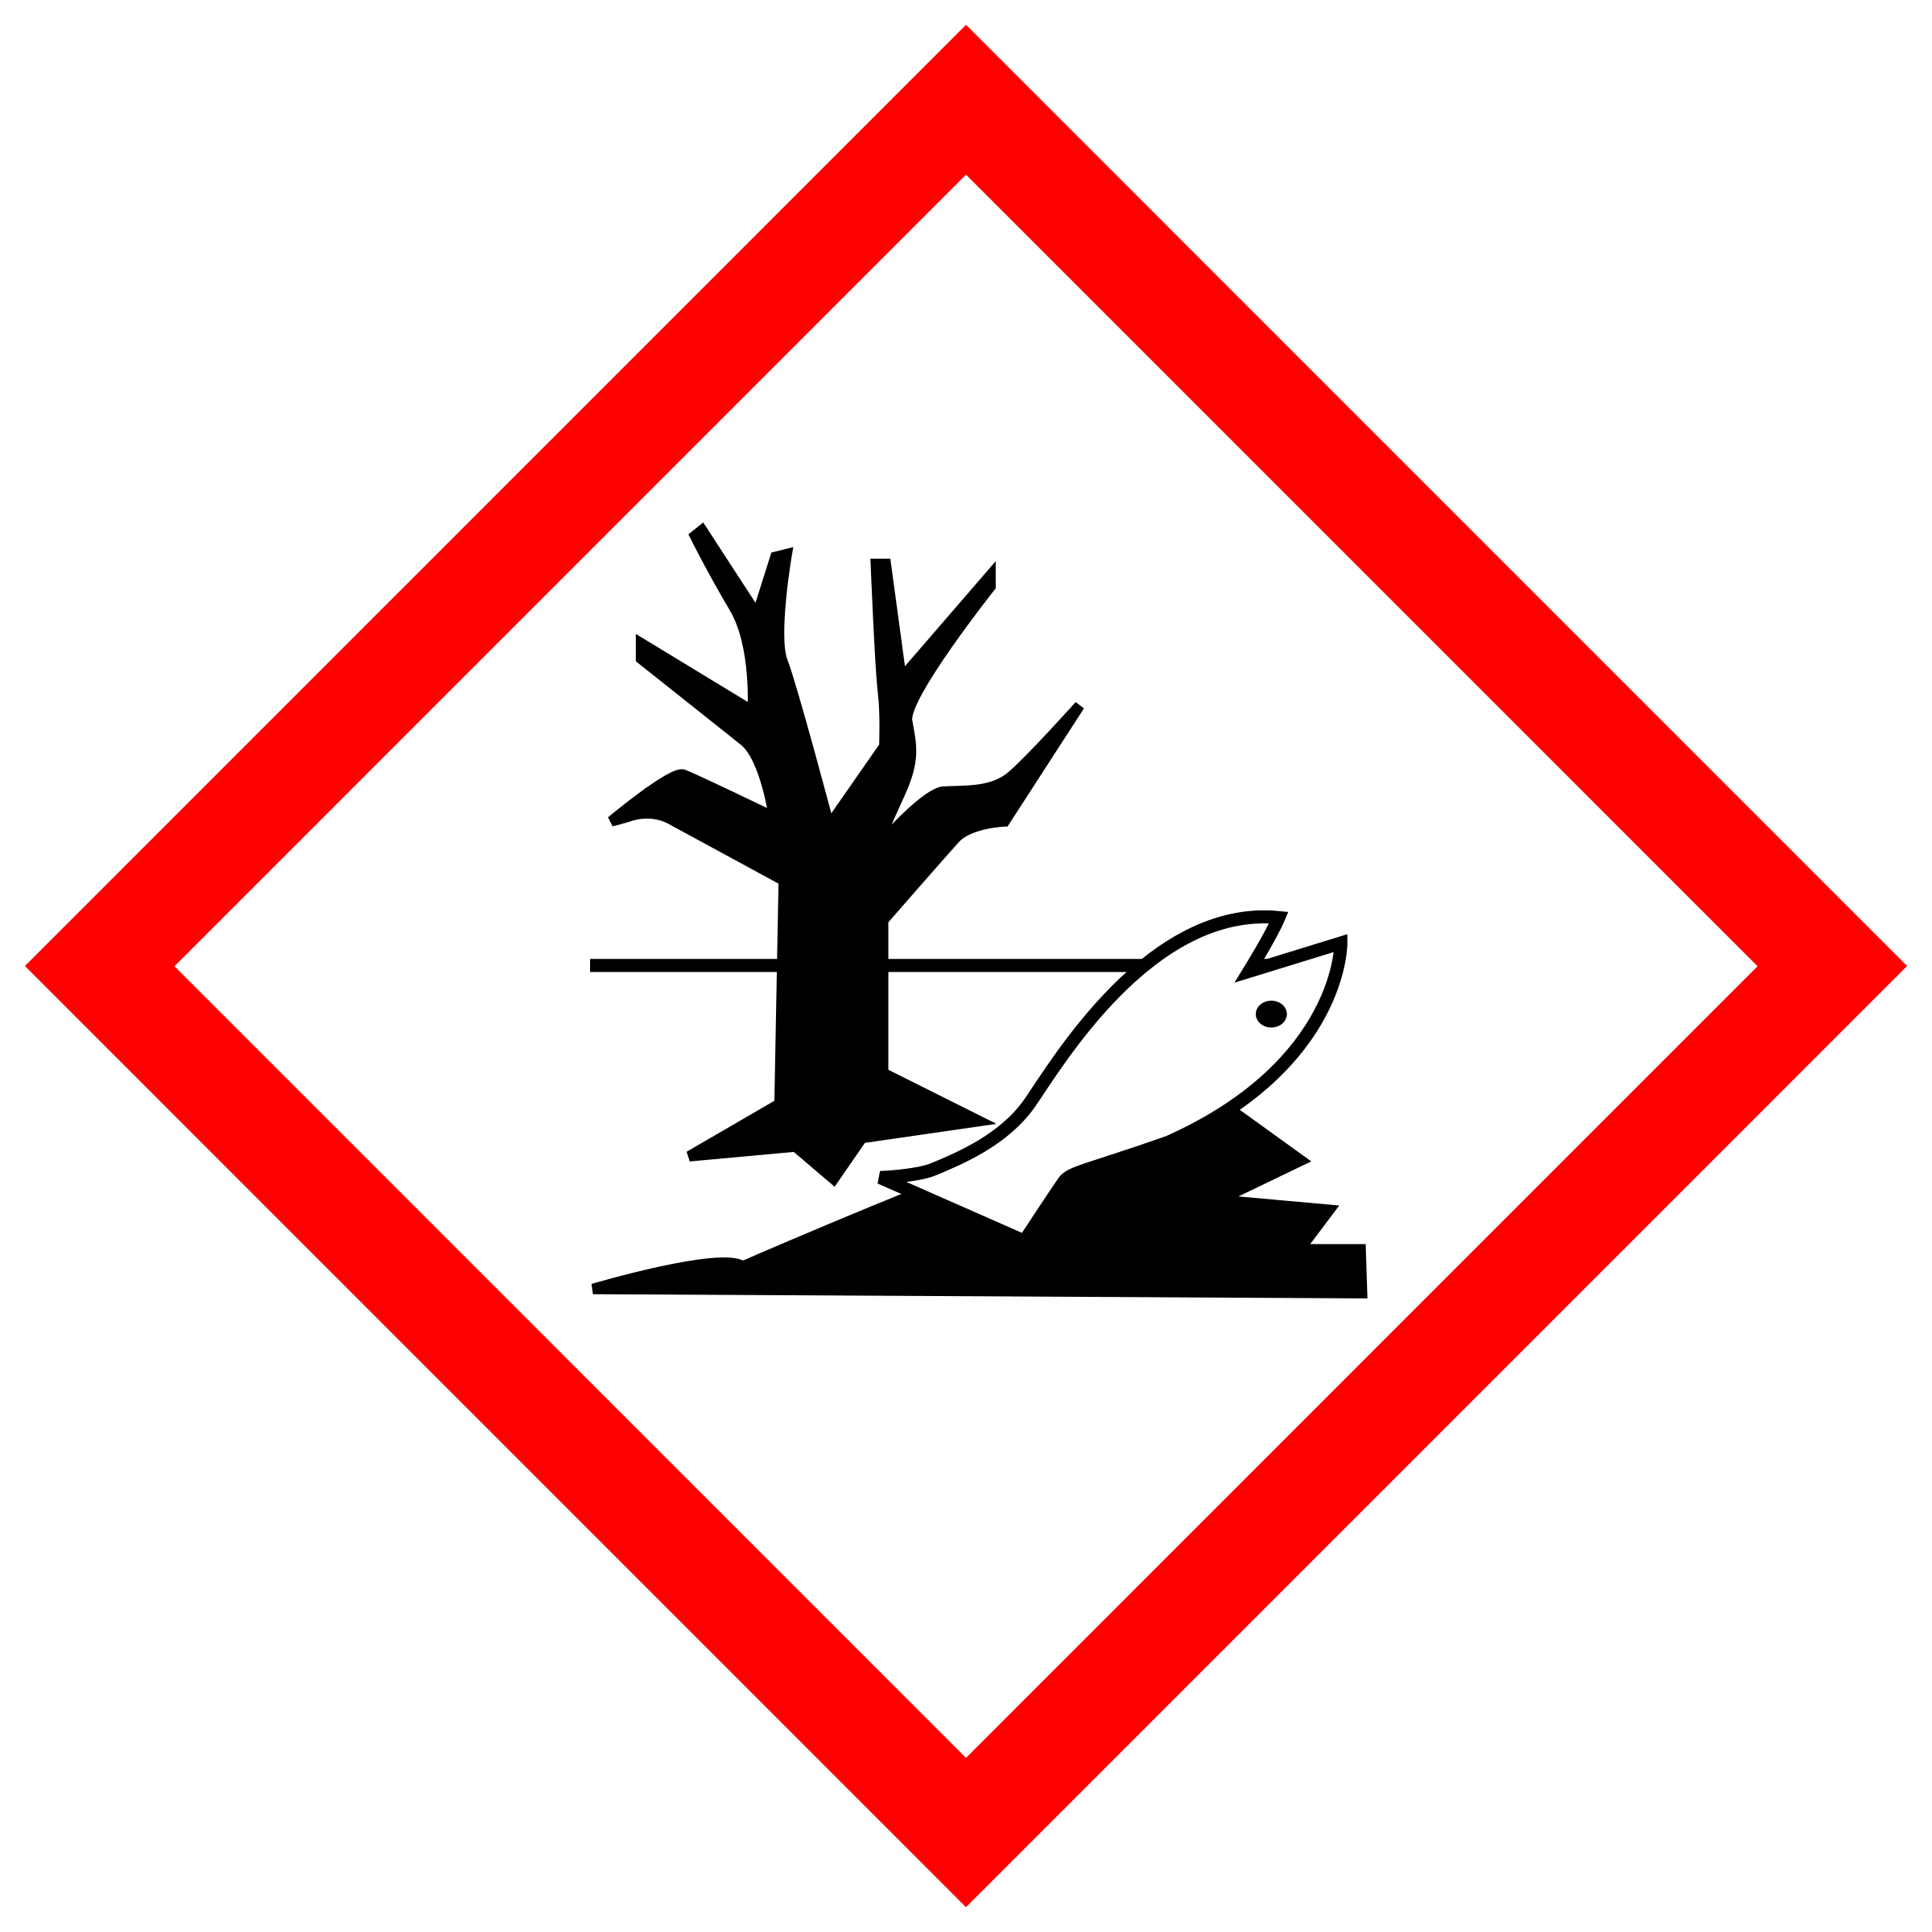 GHS pictogram for environmentally hazardous substances by Juhele